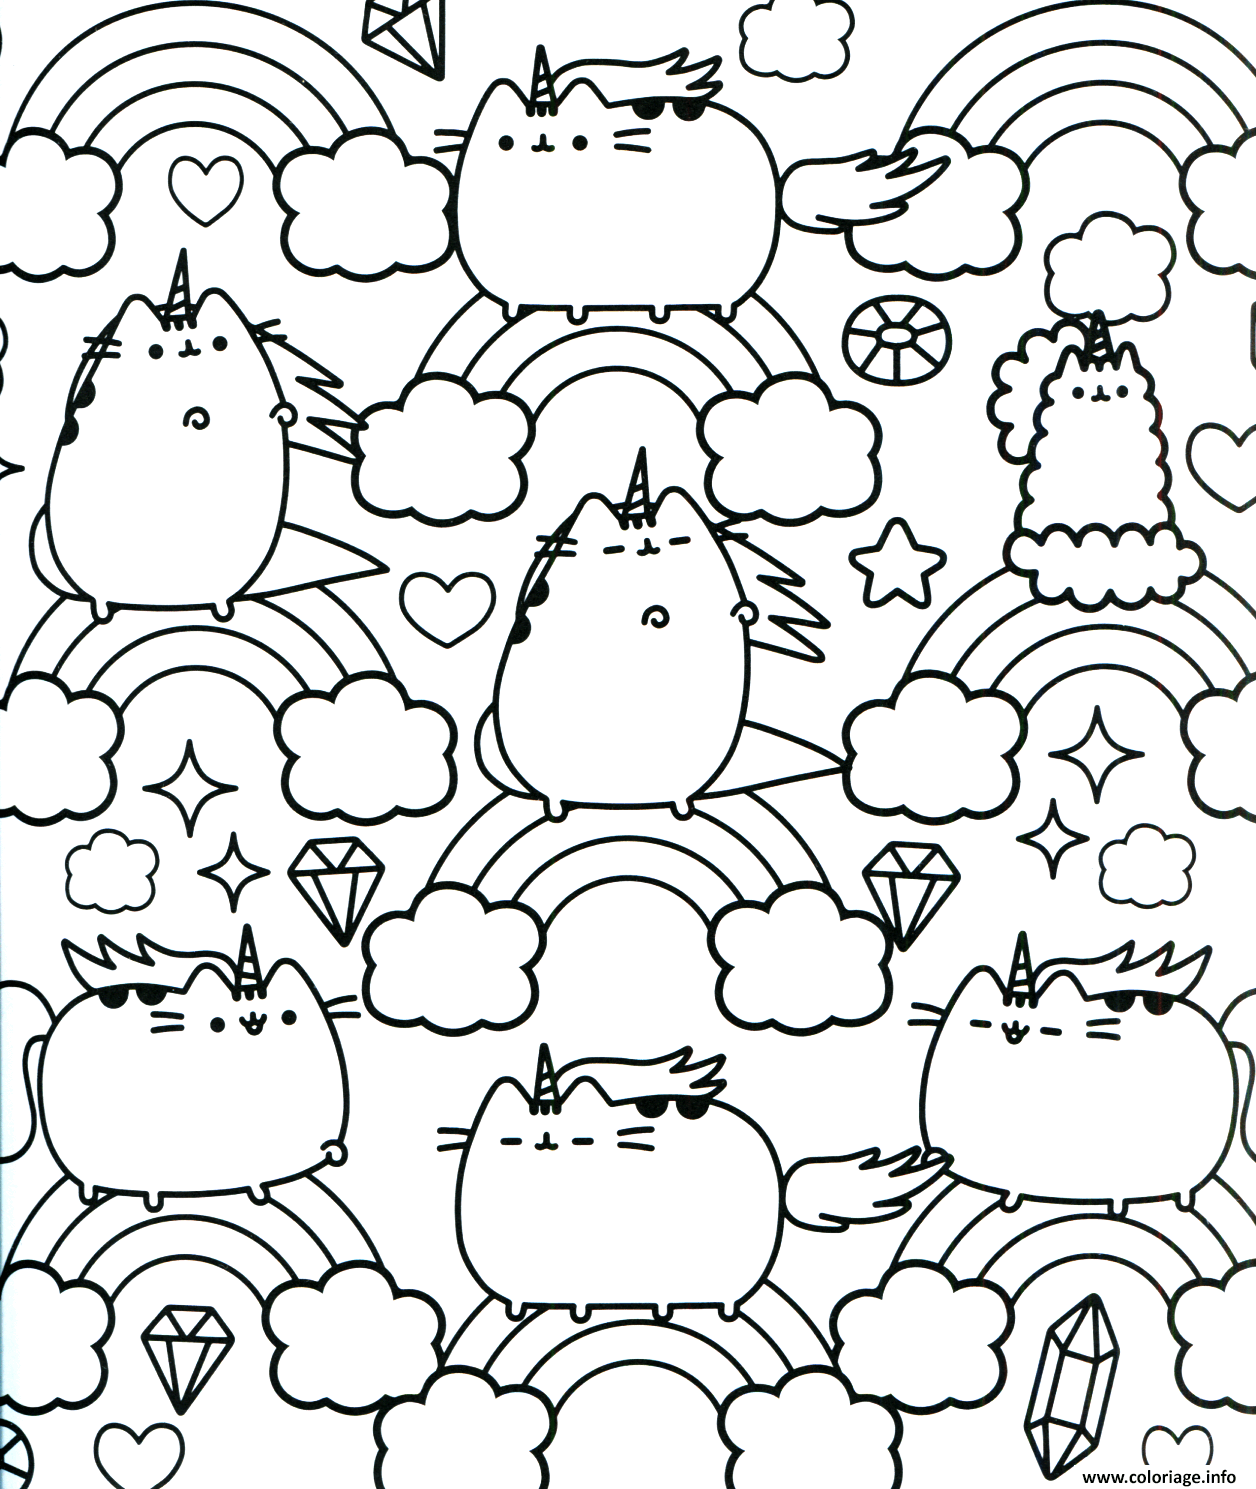 Snap Coloriage Pusheen The Cat Donuts Pattern Jecolorie Com Photos